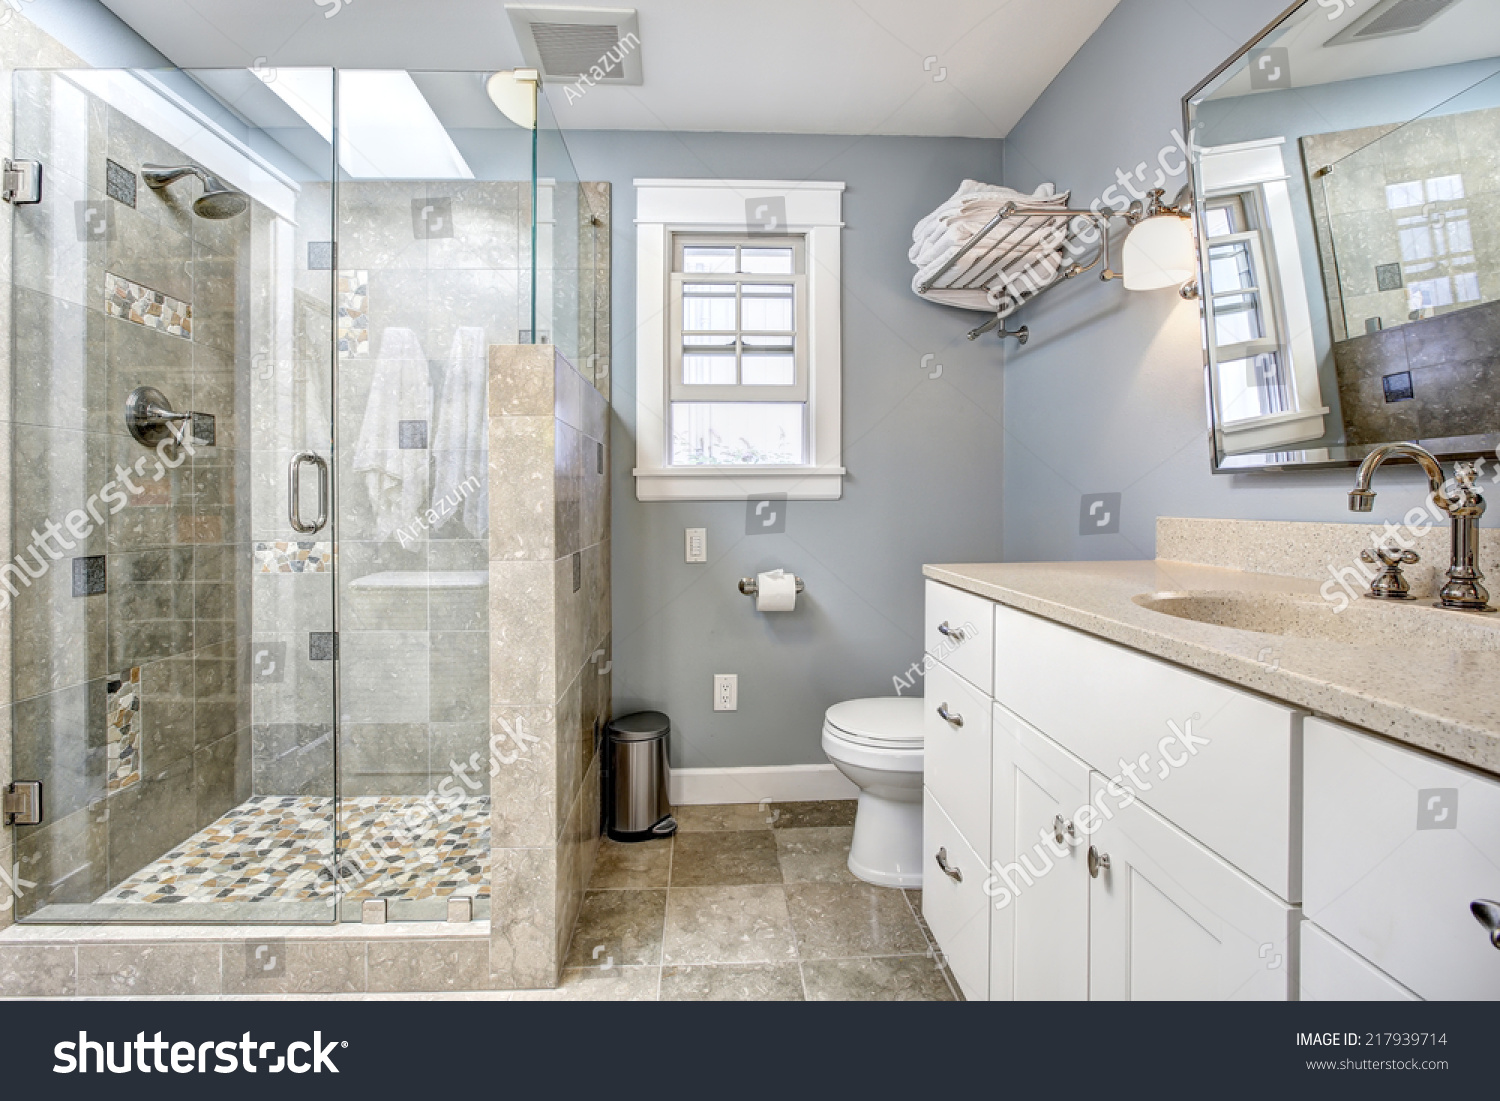 Modern blue and white bathroom - Light Blue Modern Bathroom Interior With Glass Door Shower And White Cabinet With Mirror